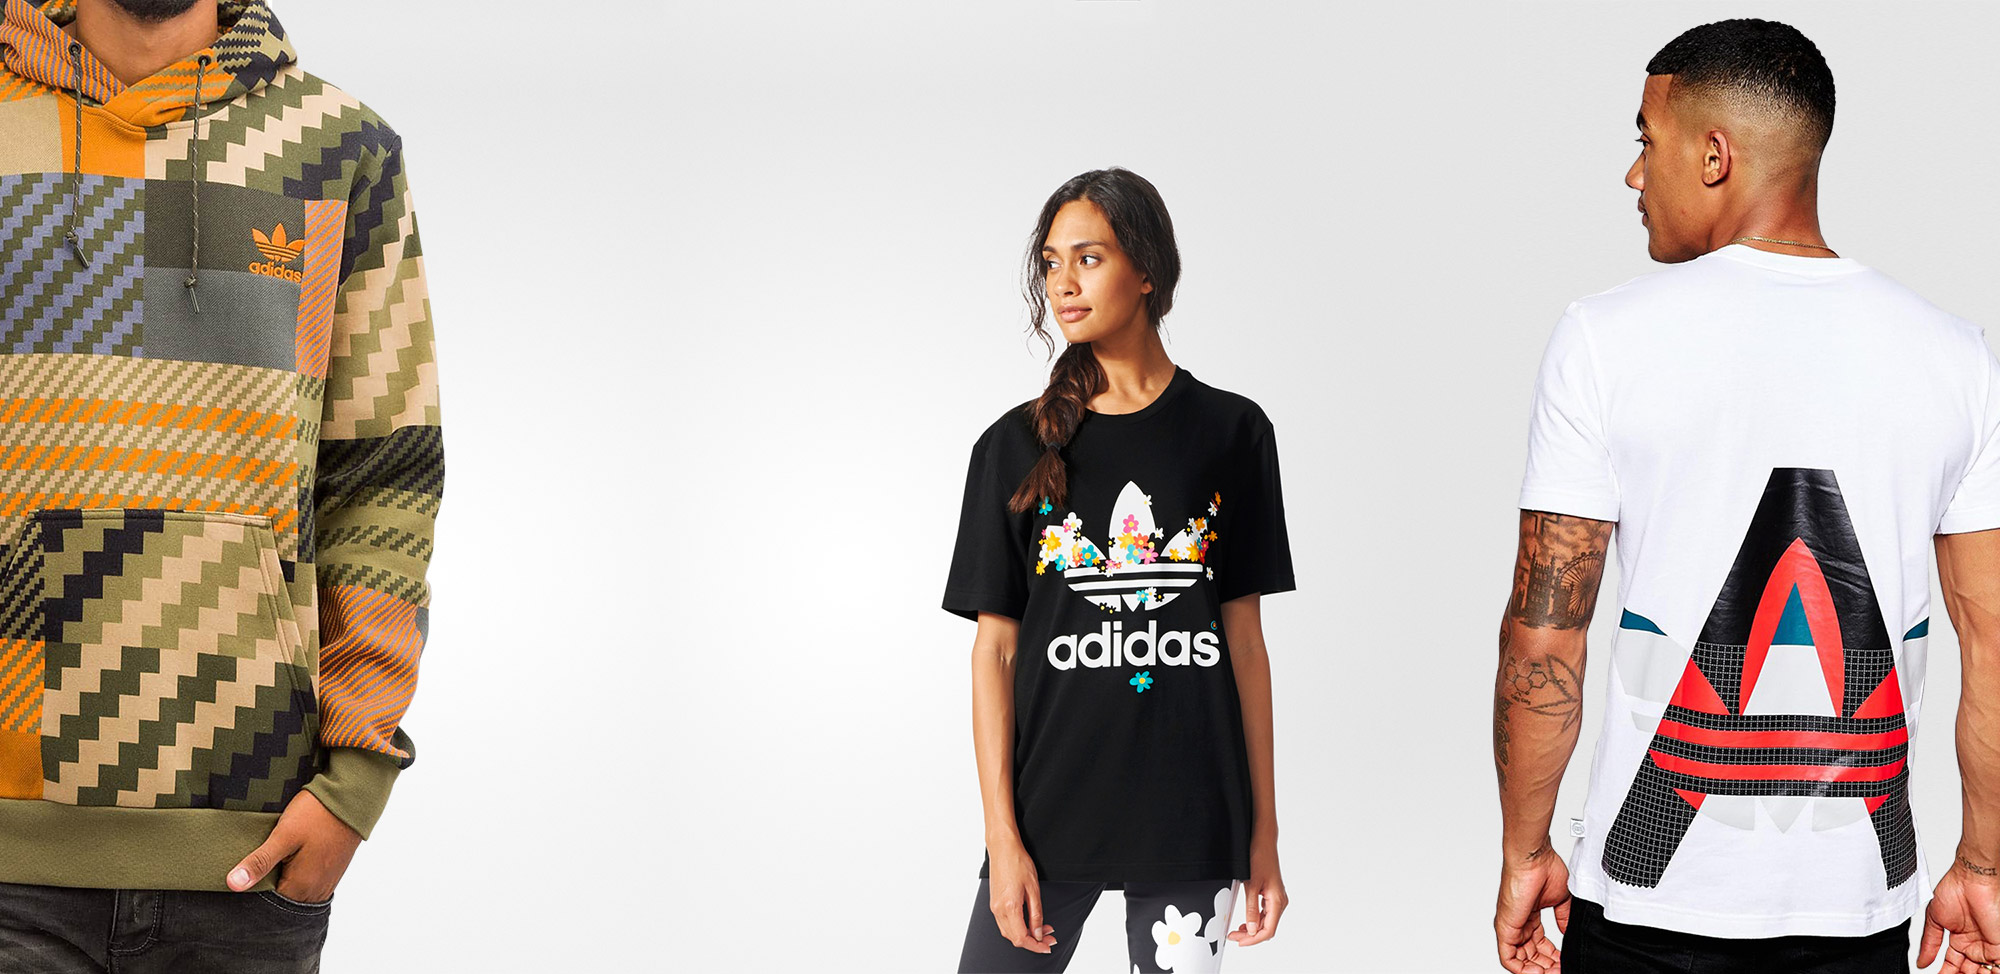 ADIDAS ORIGINAL APPAREL DESIGNS PAINTSHOP